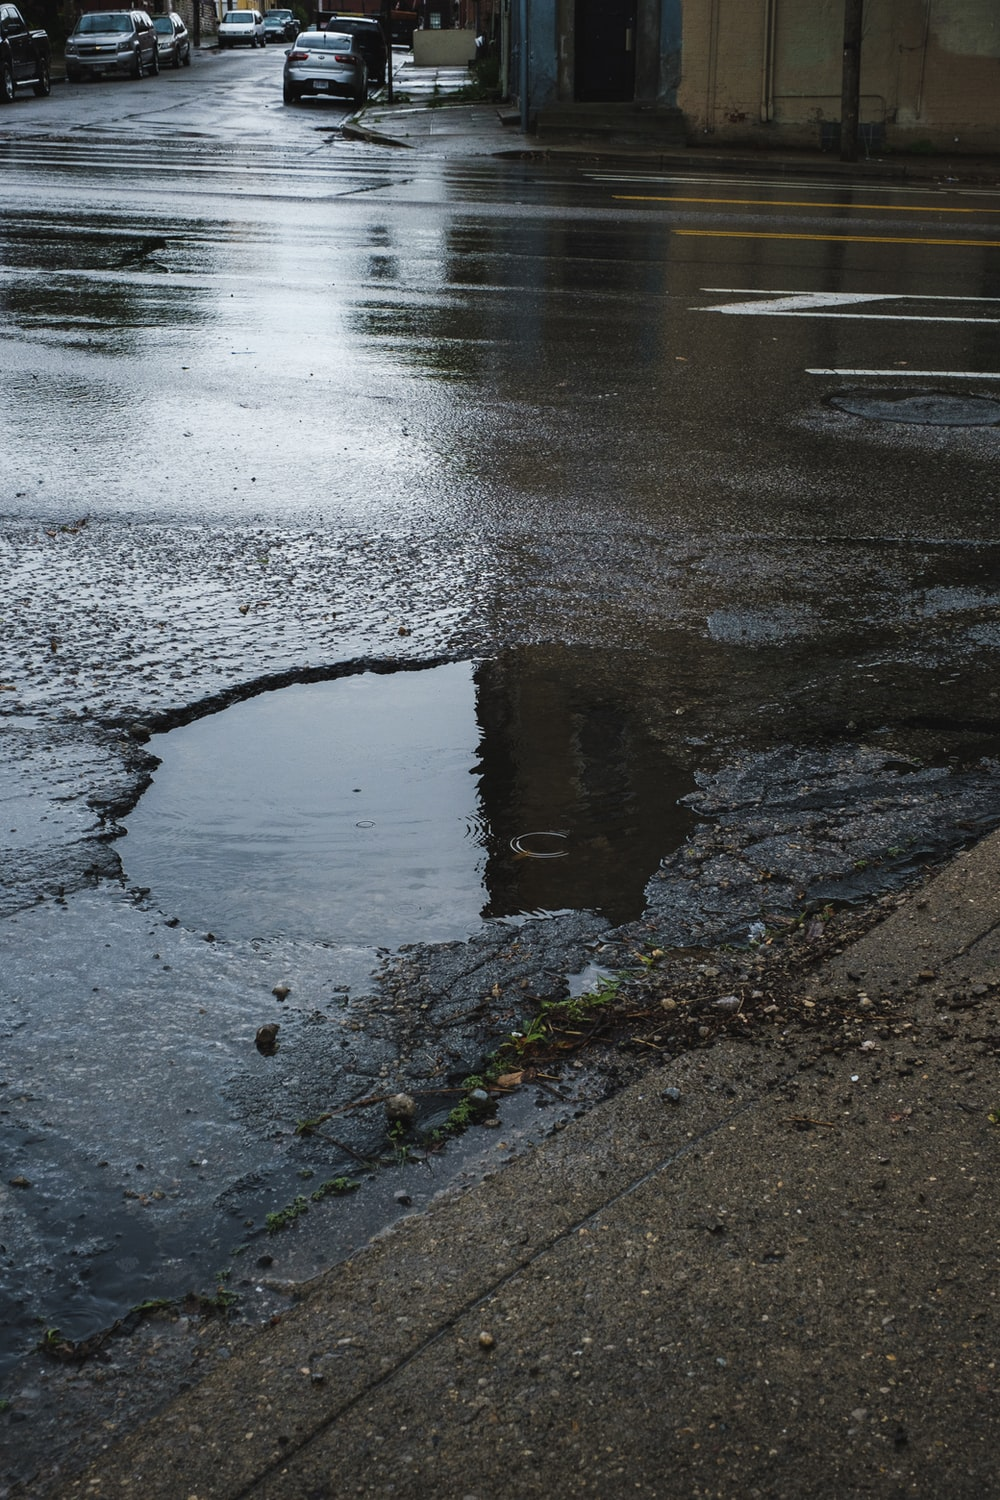 wet road close-up photography